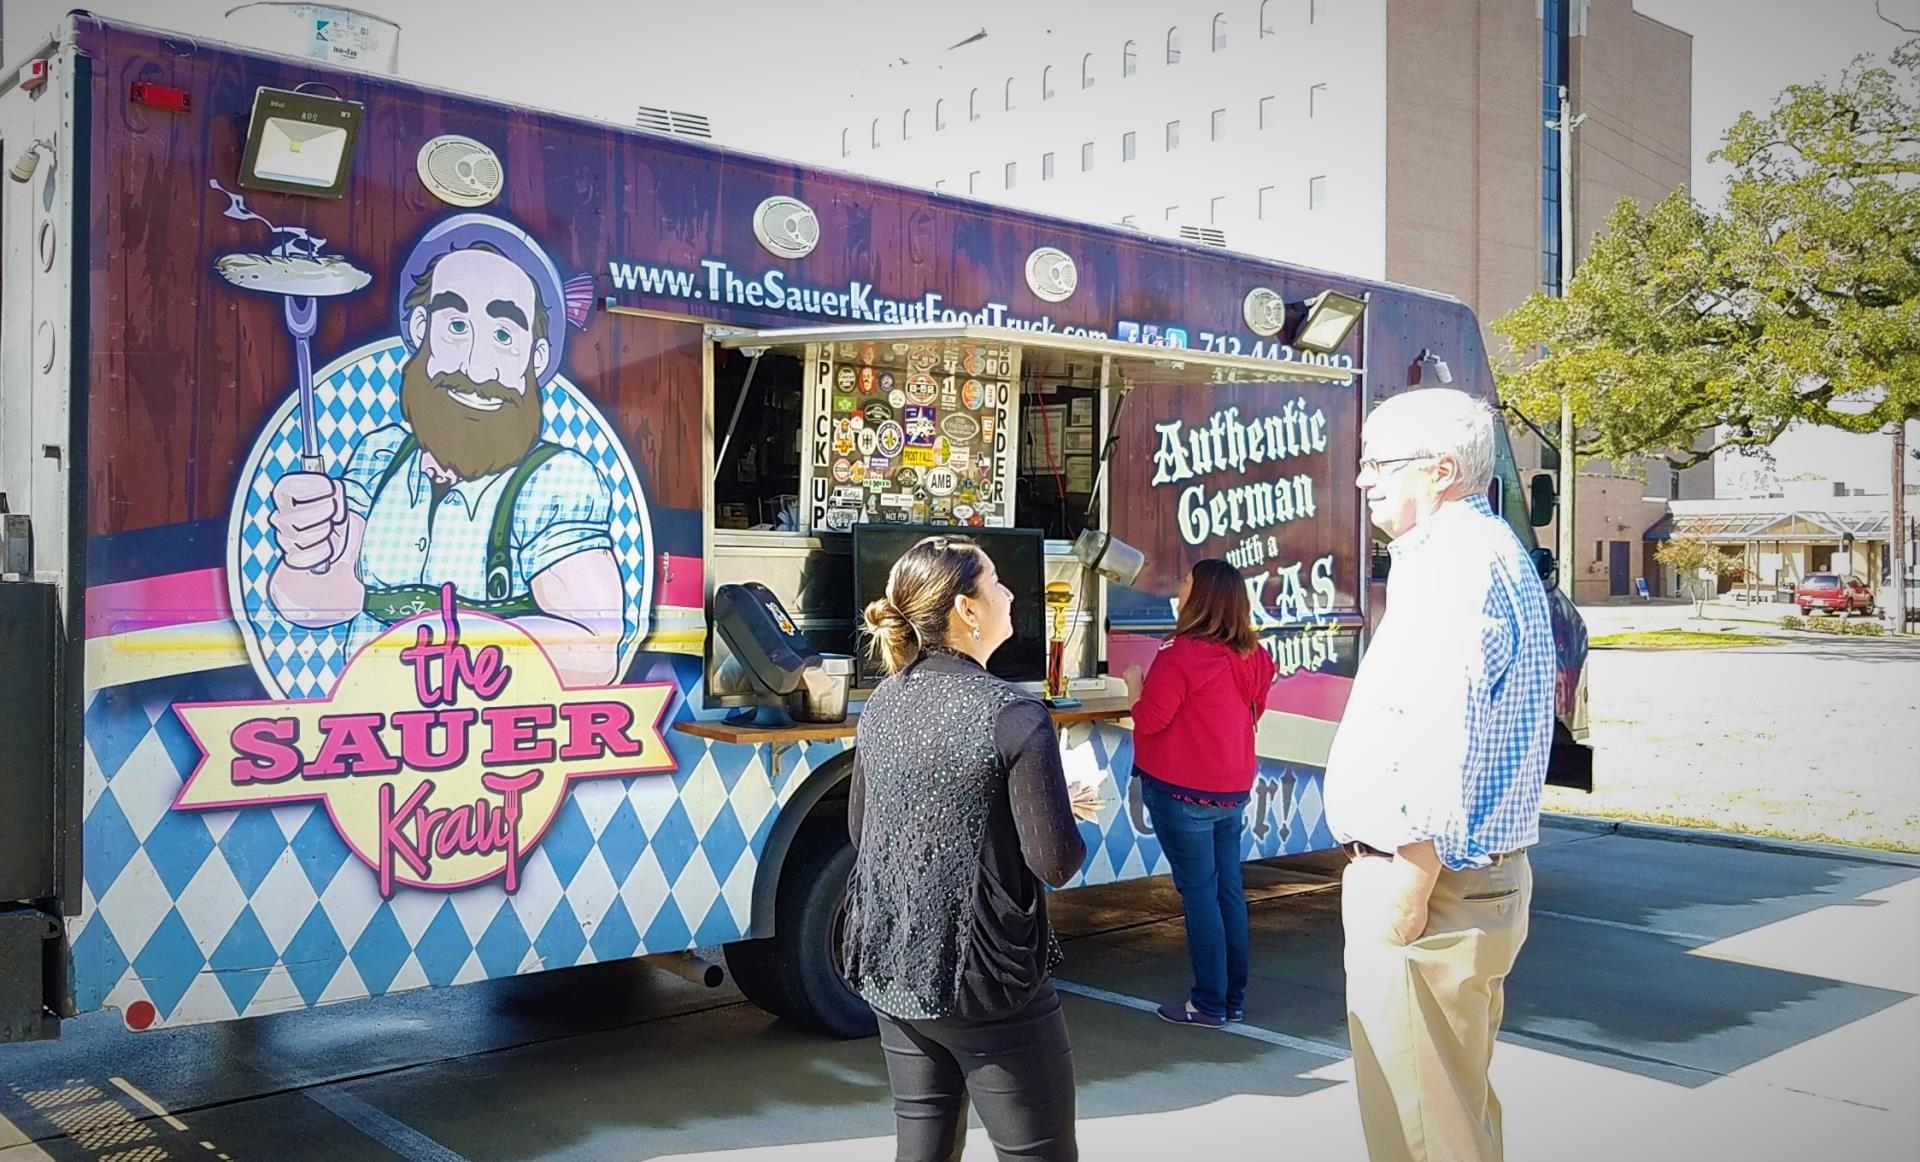 Sauerkraut Food Truck March 2019.2